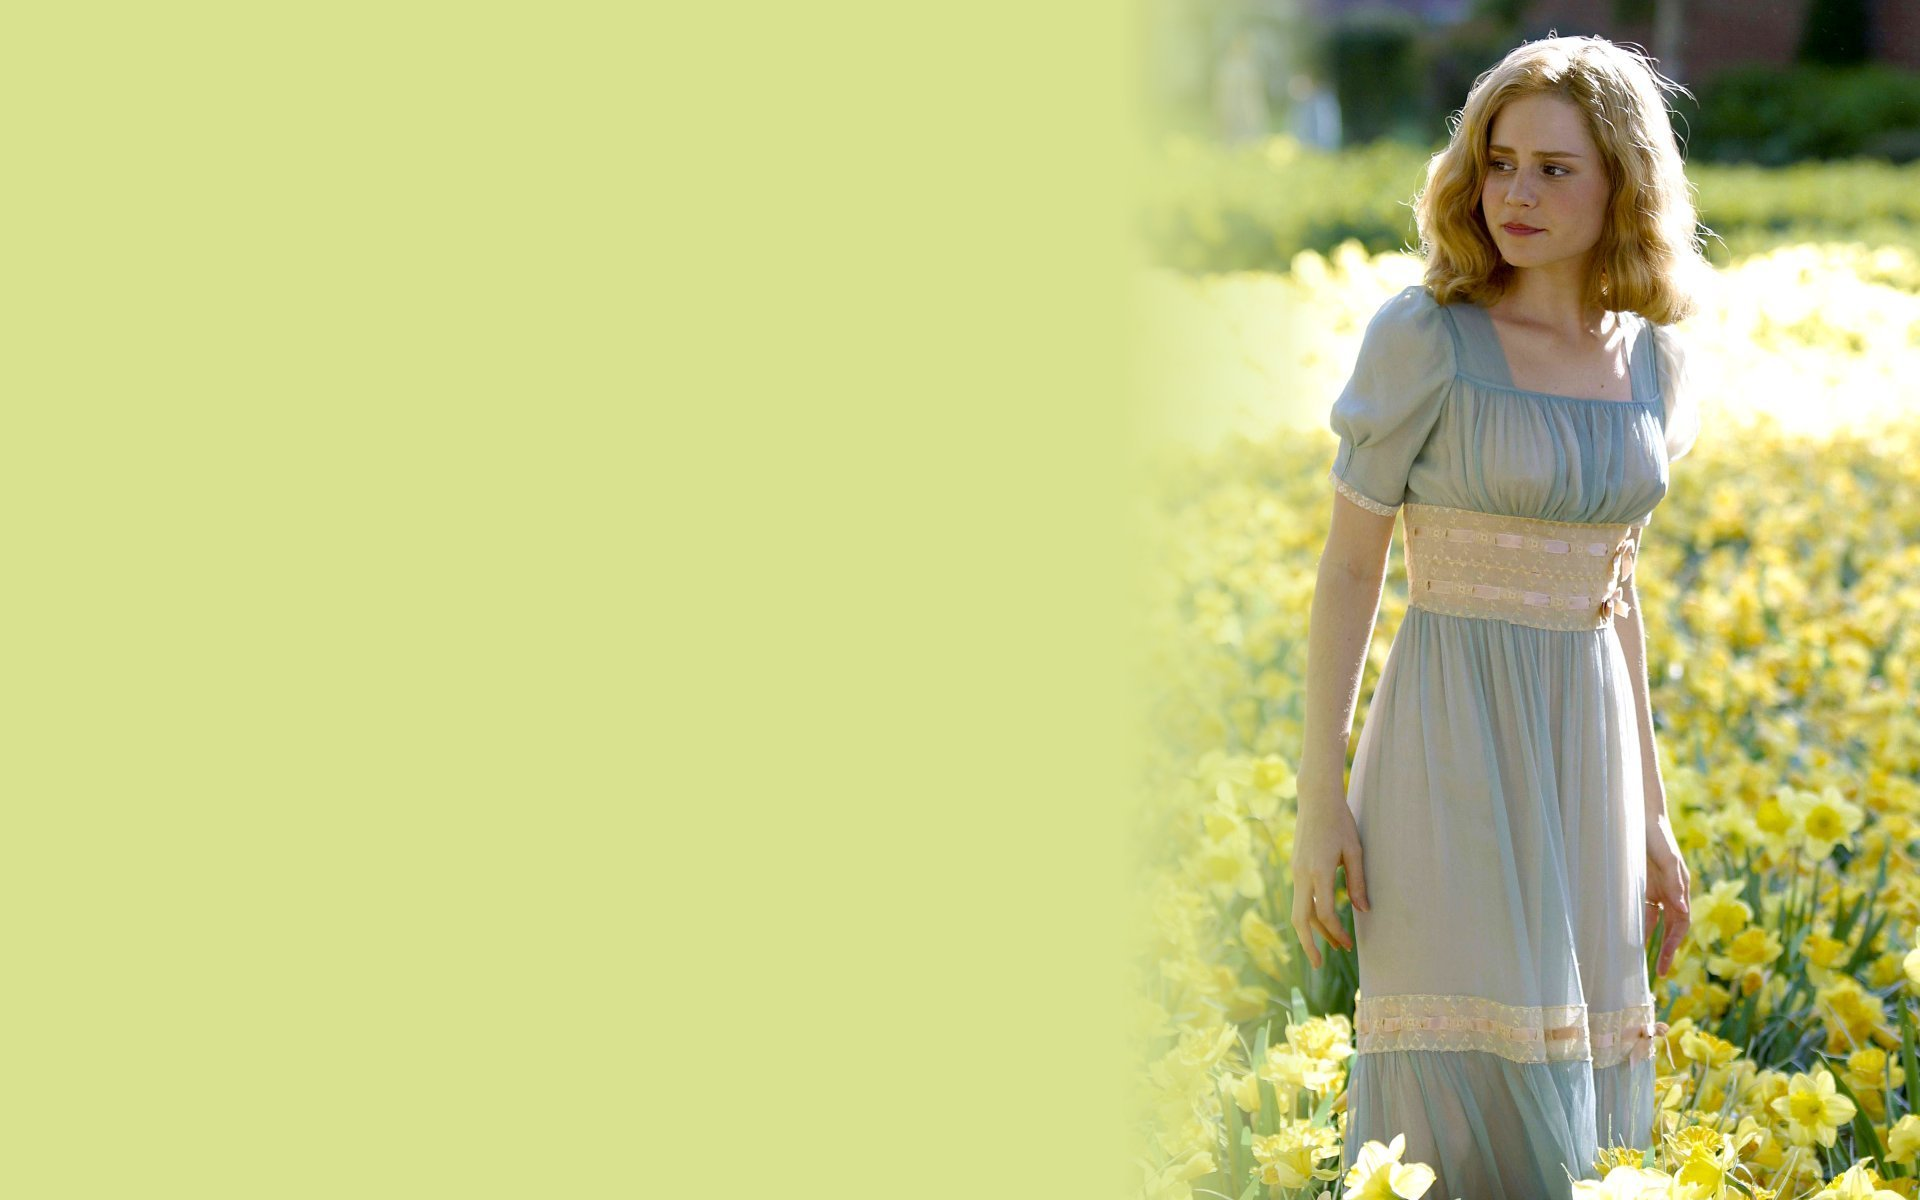 Alison Lohman Alison Lohman  quot Big Fish quot  Widescreen WallpaperAlison Lohman Big Fish